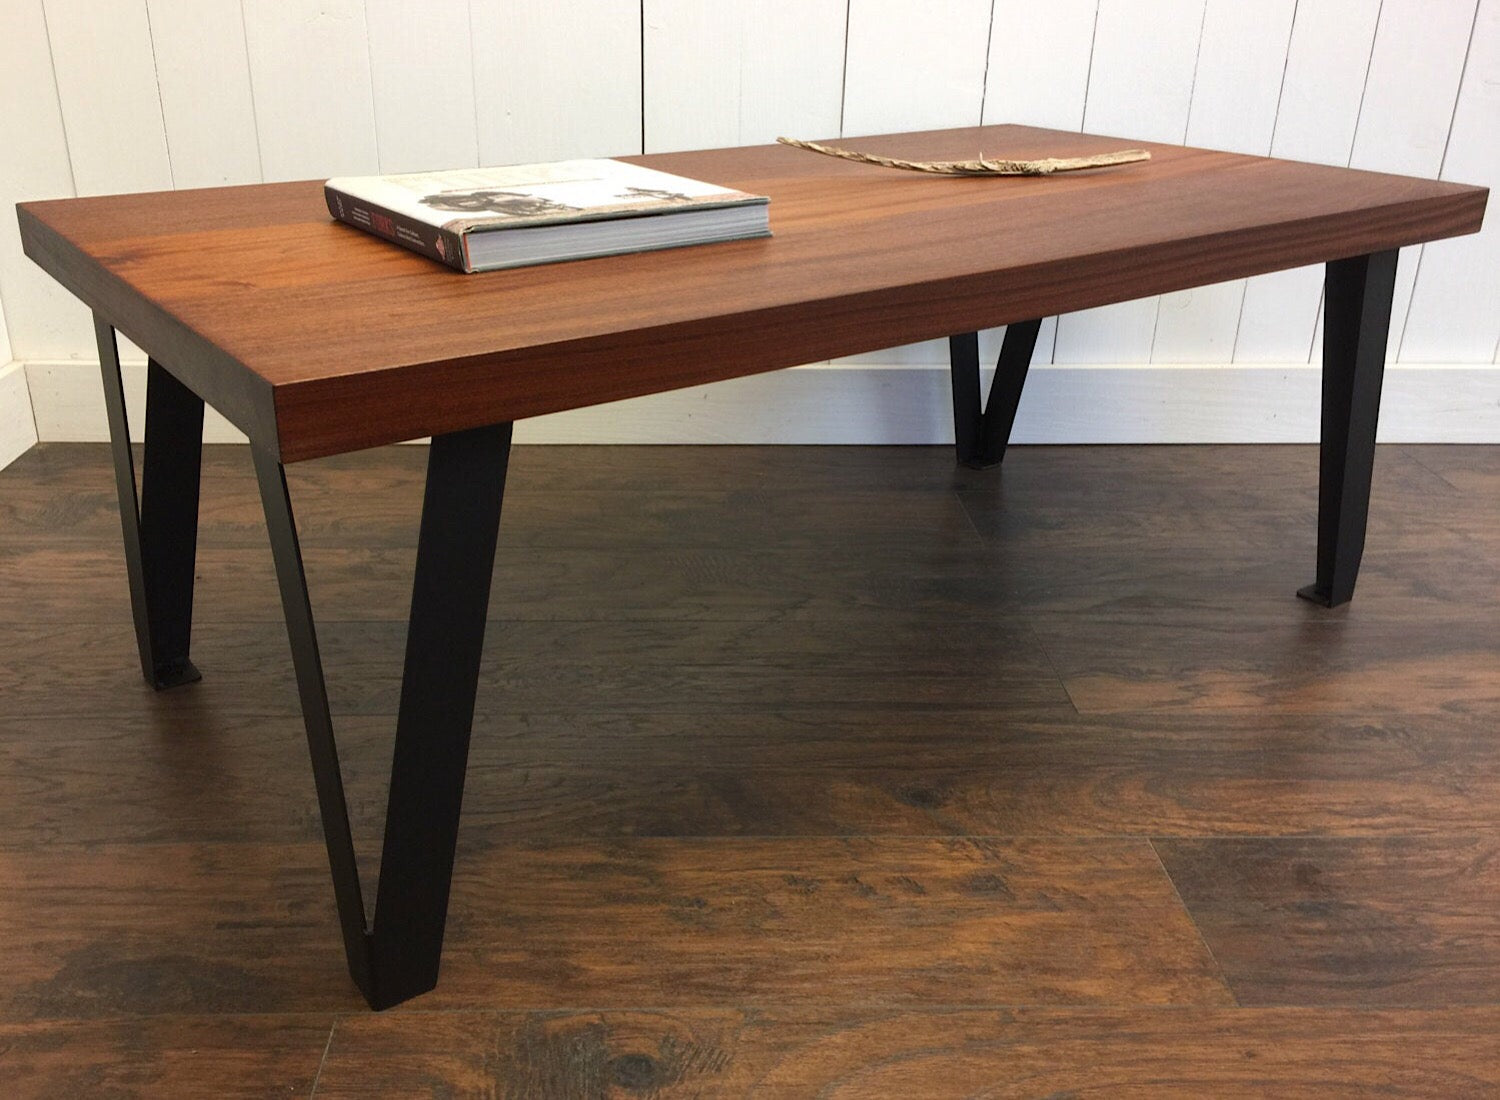 Contemporary industrial coffee table, solid mahogany with steel legs.